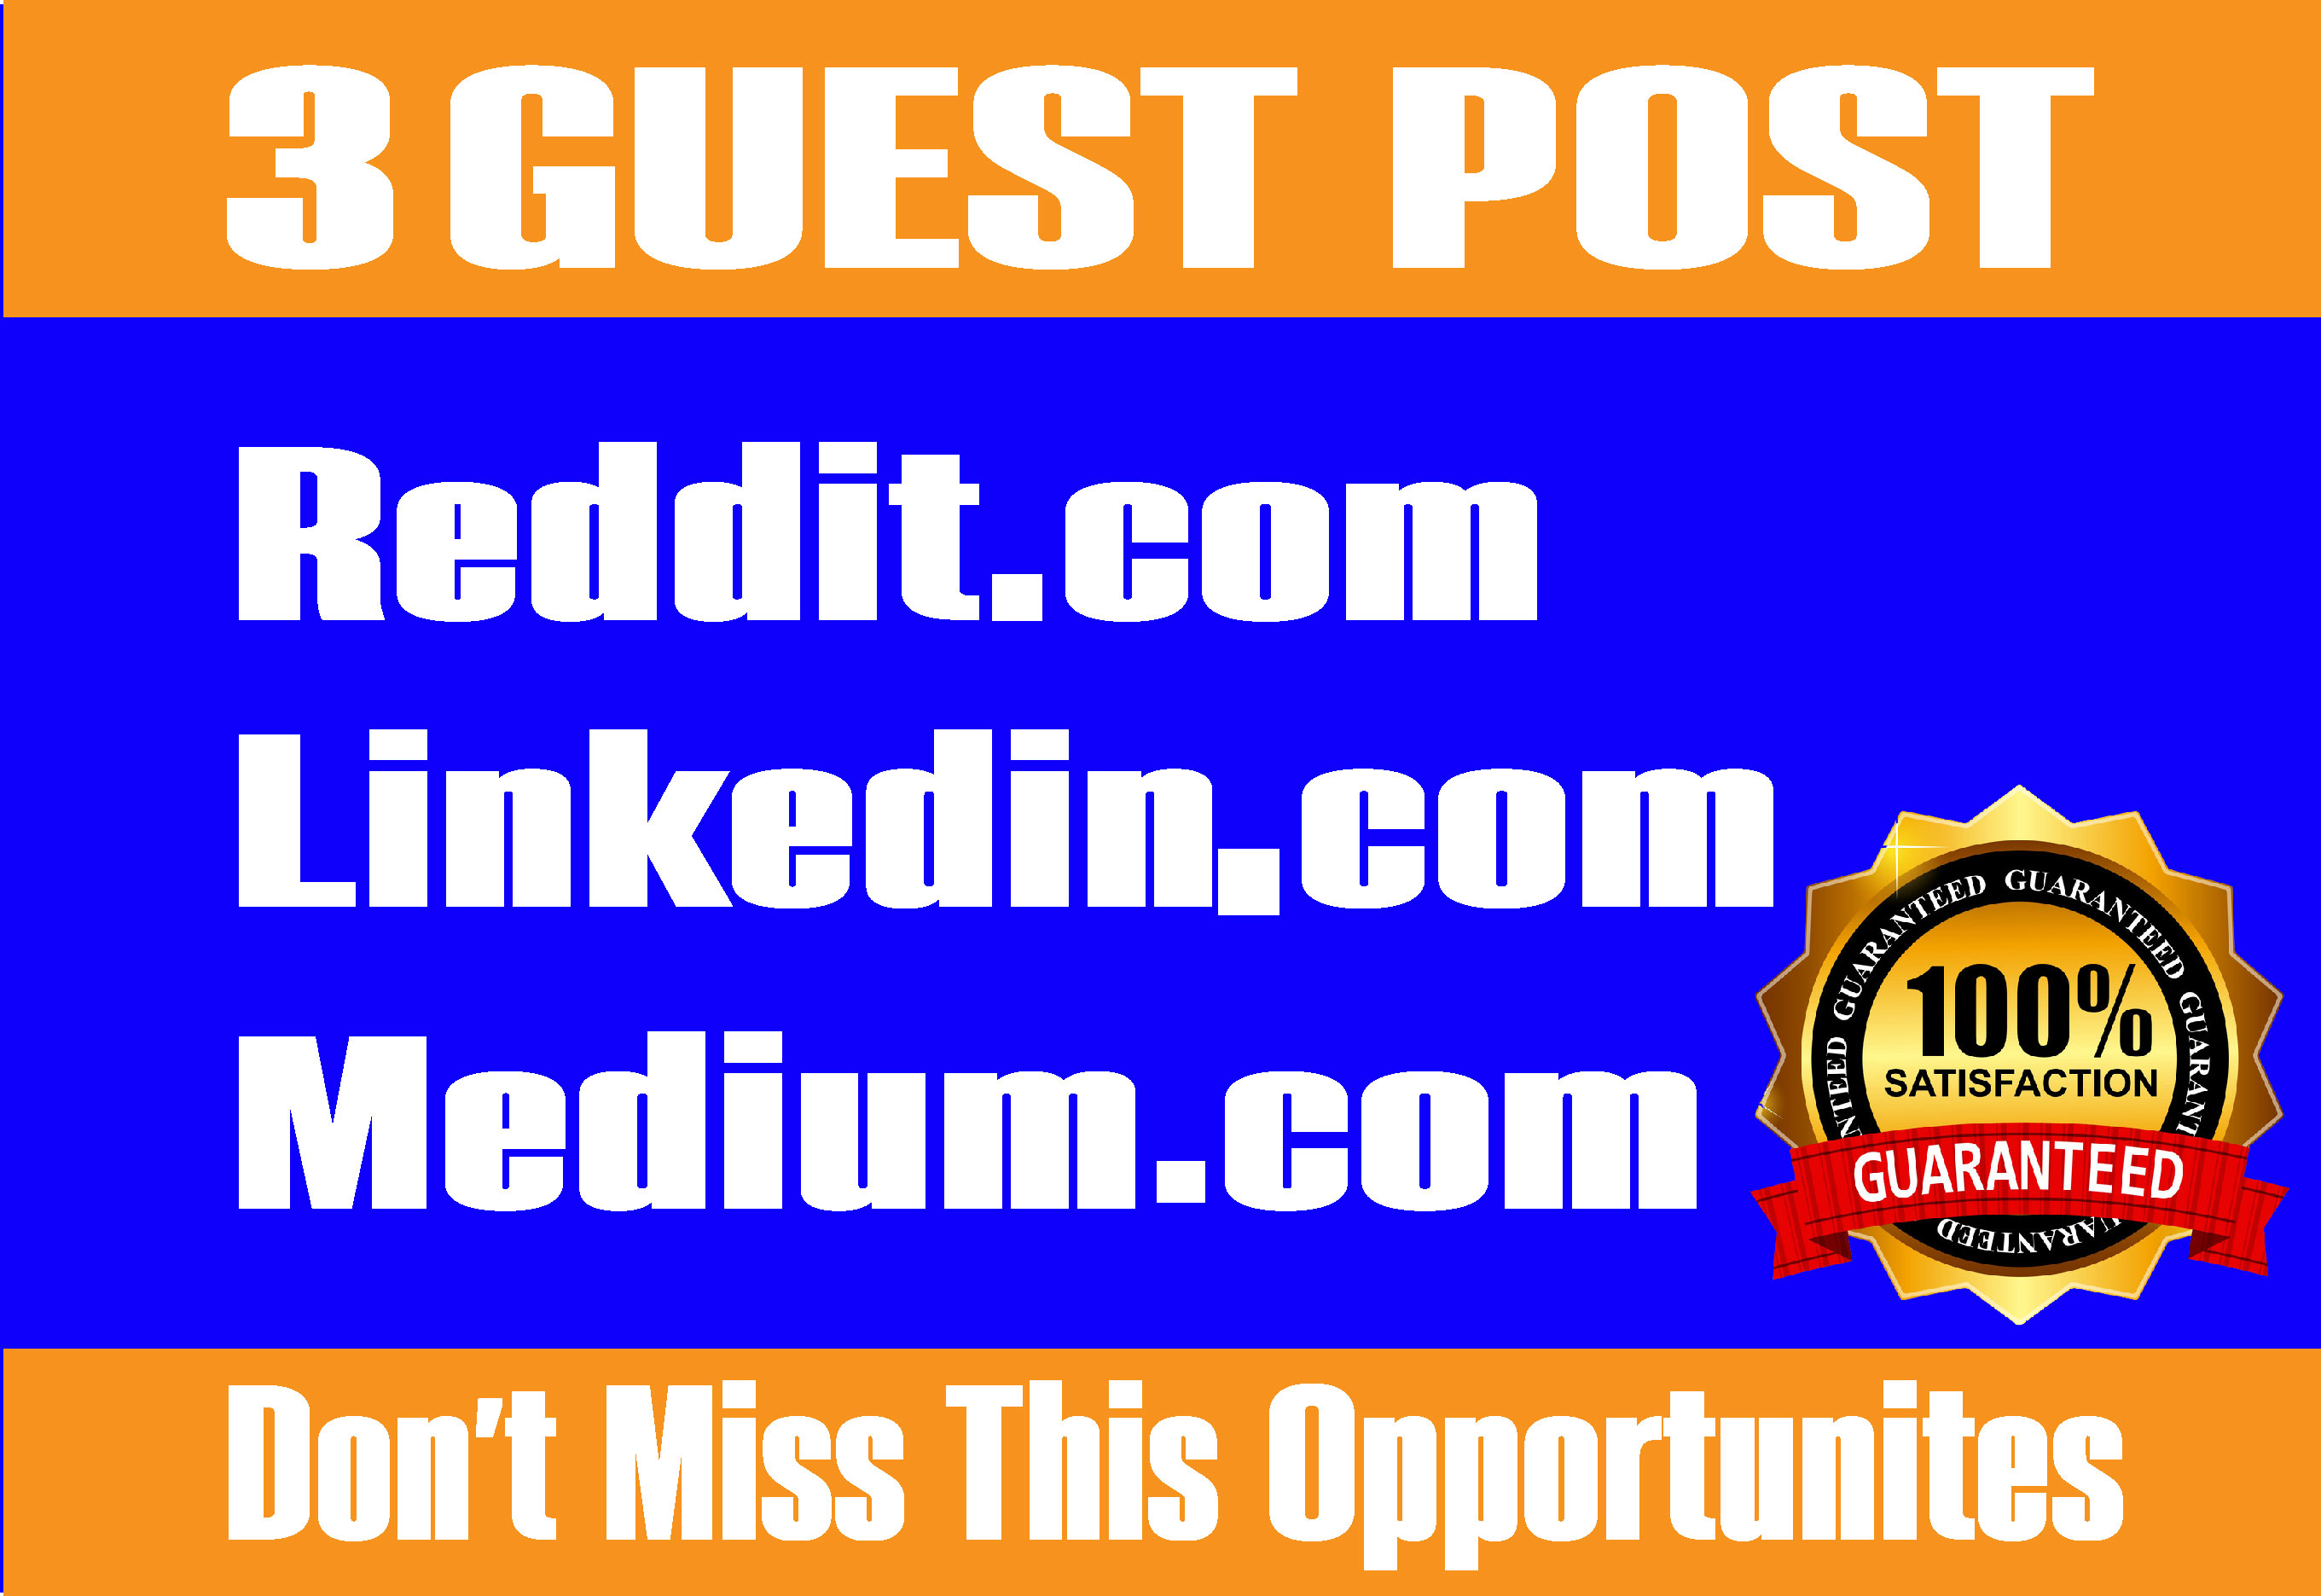 Write and publish 3 Guest post on Reddit, Linkedin, Medium for rank your site.